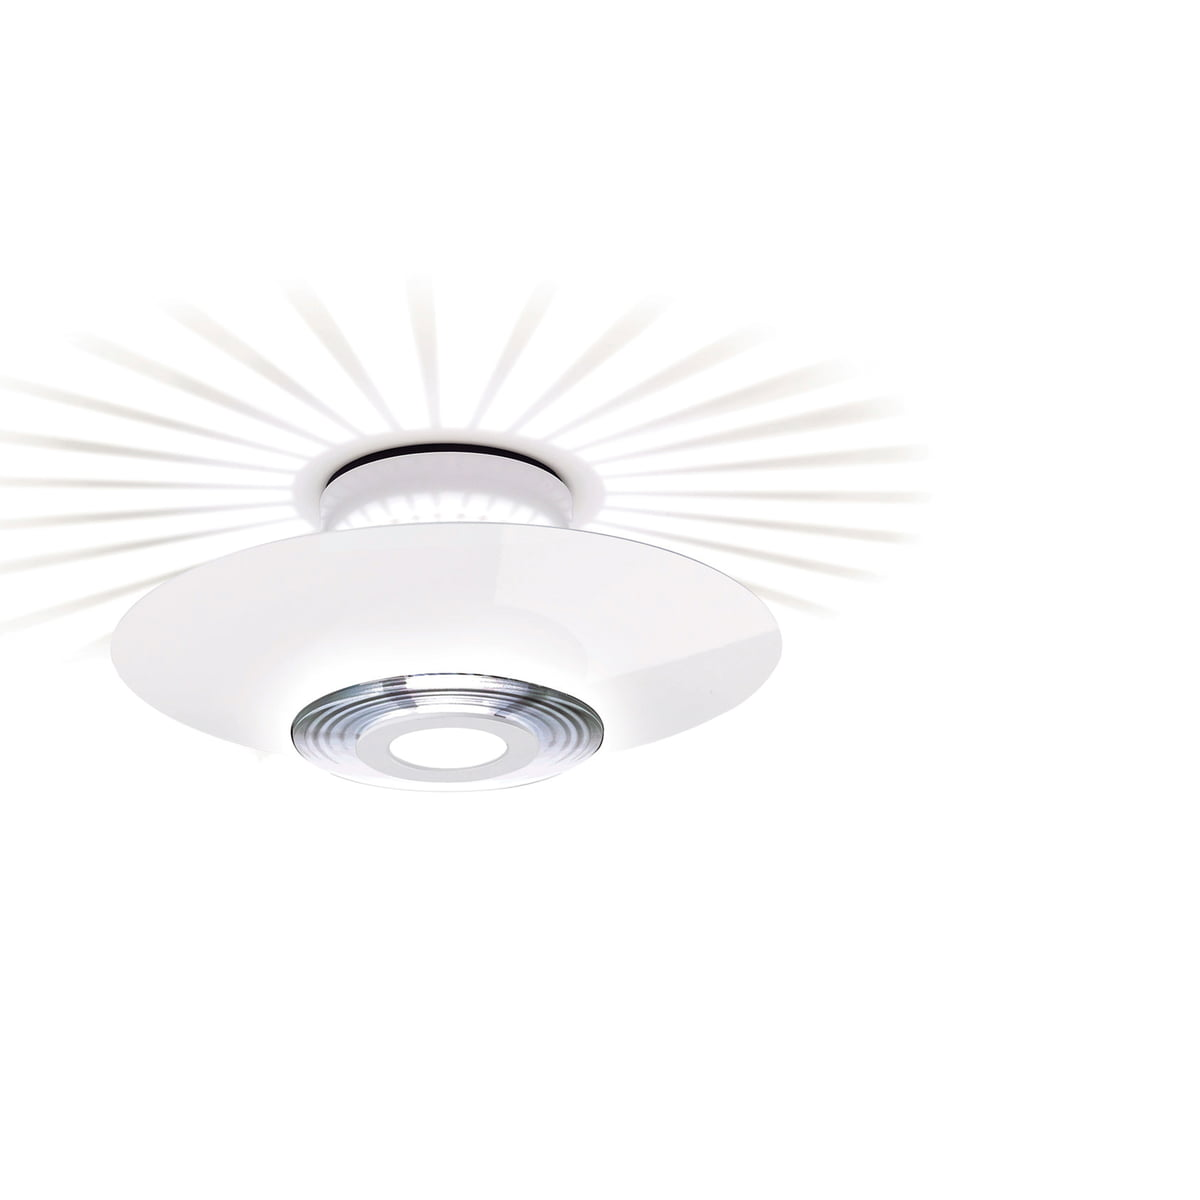 The moni ceiling lamp from flos flos moni 1 ceiling lamp mozeypictures Images